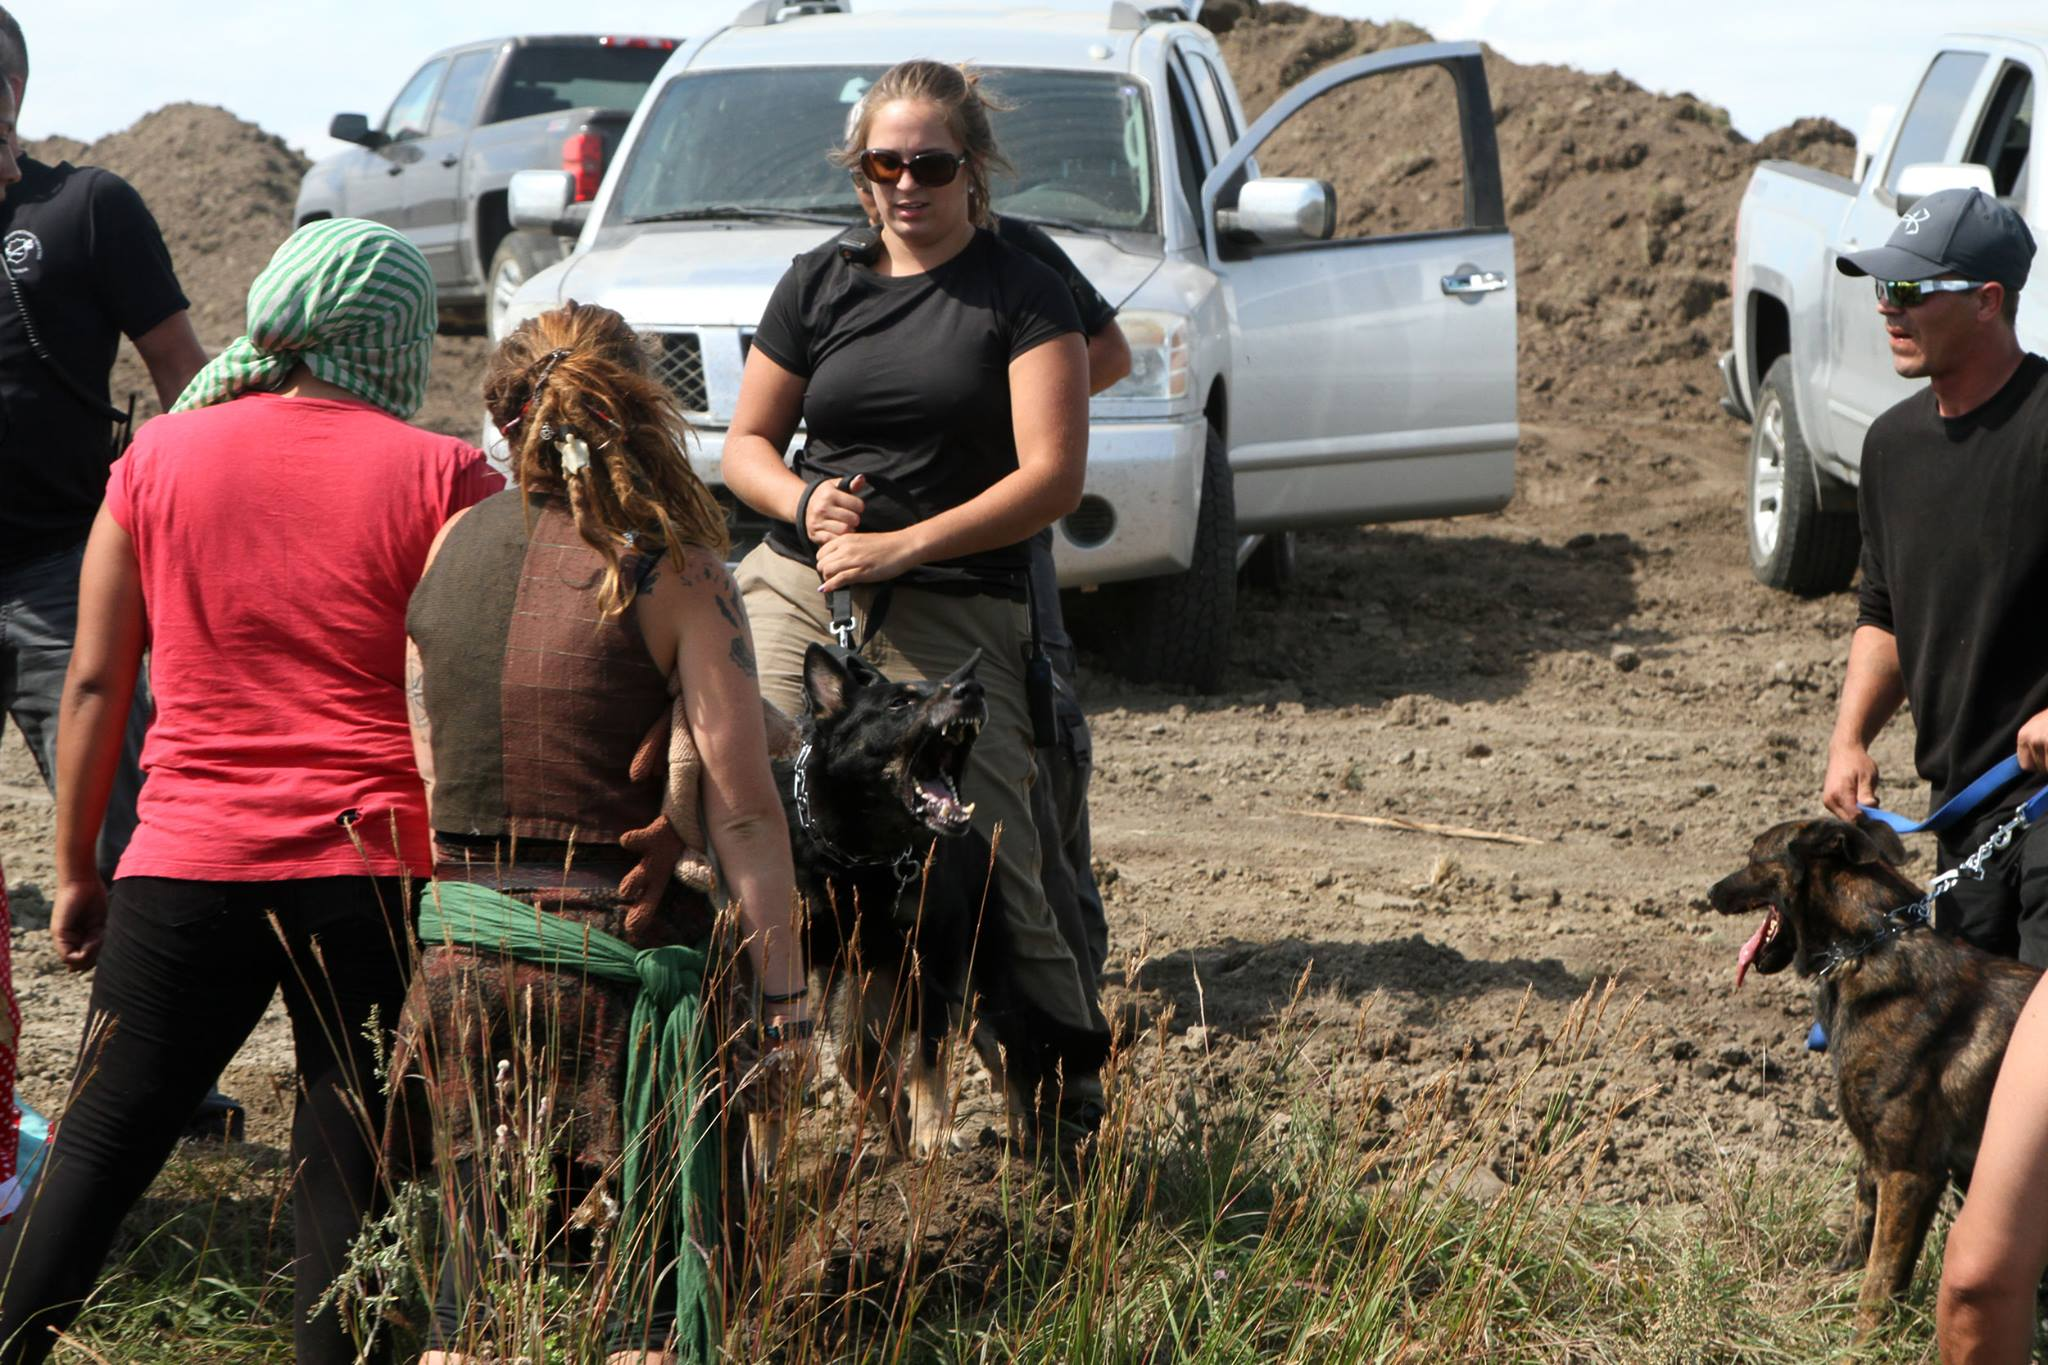 Steven Newcomb: Vicious dogs unleashed on #NoDAPL resisters